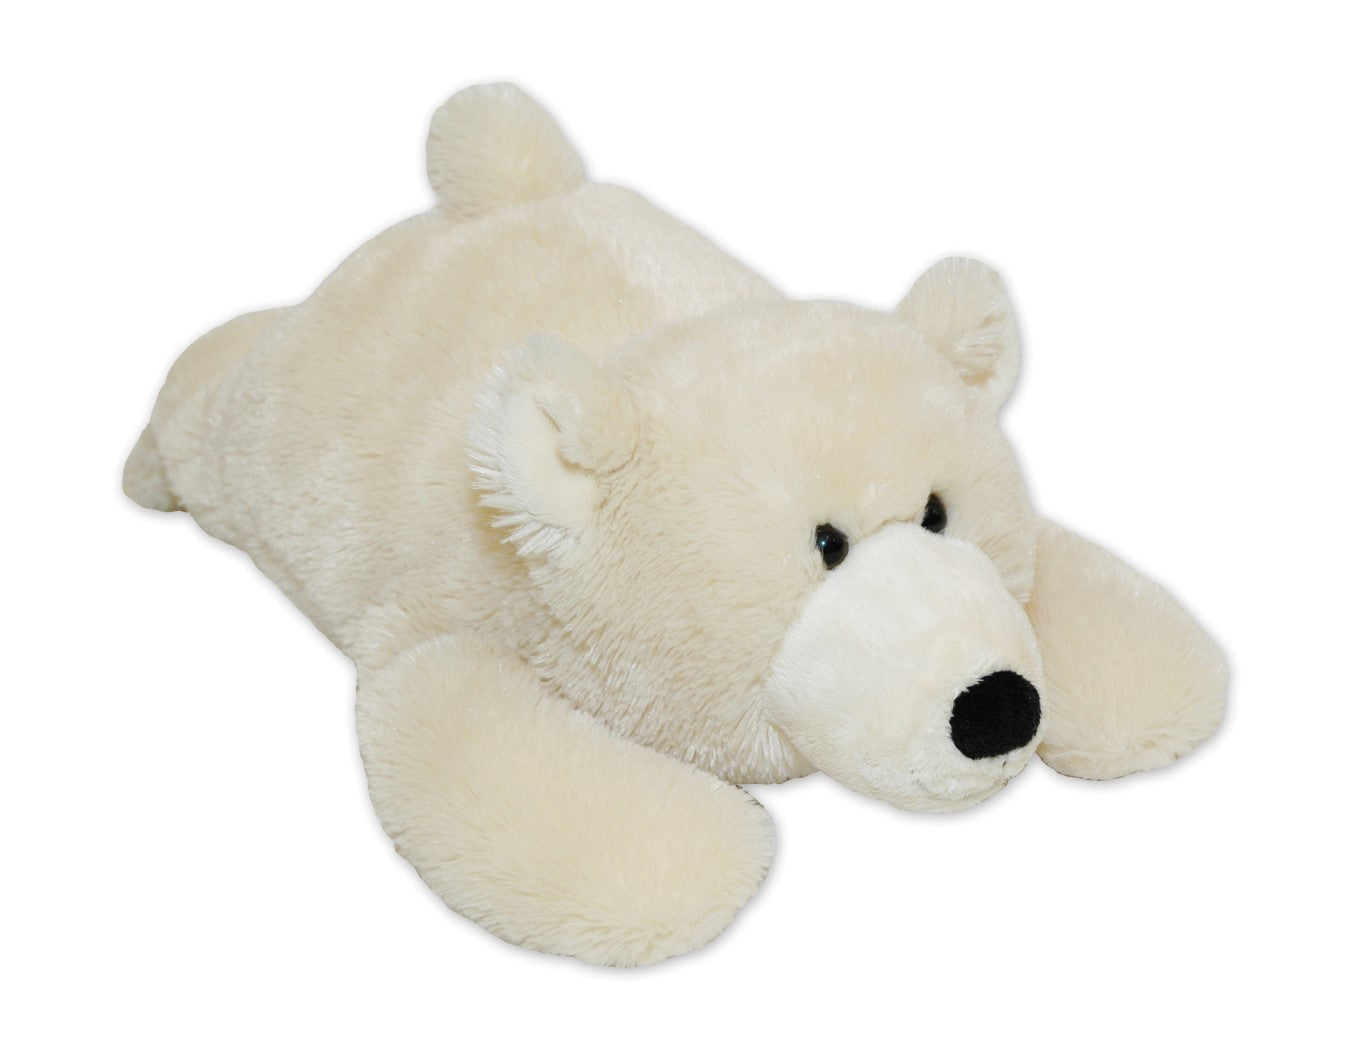 Polar bear - white stuffed animal toy w/black nose & button eyes